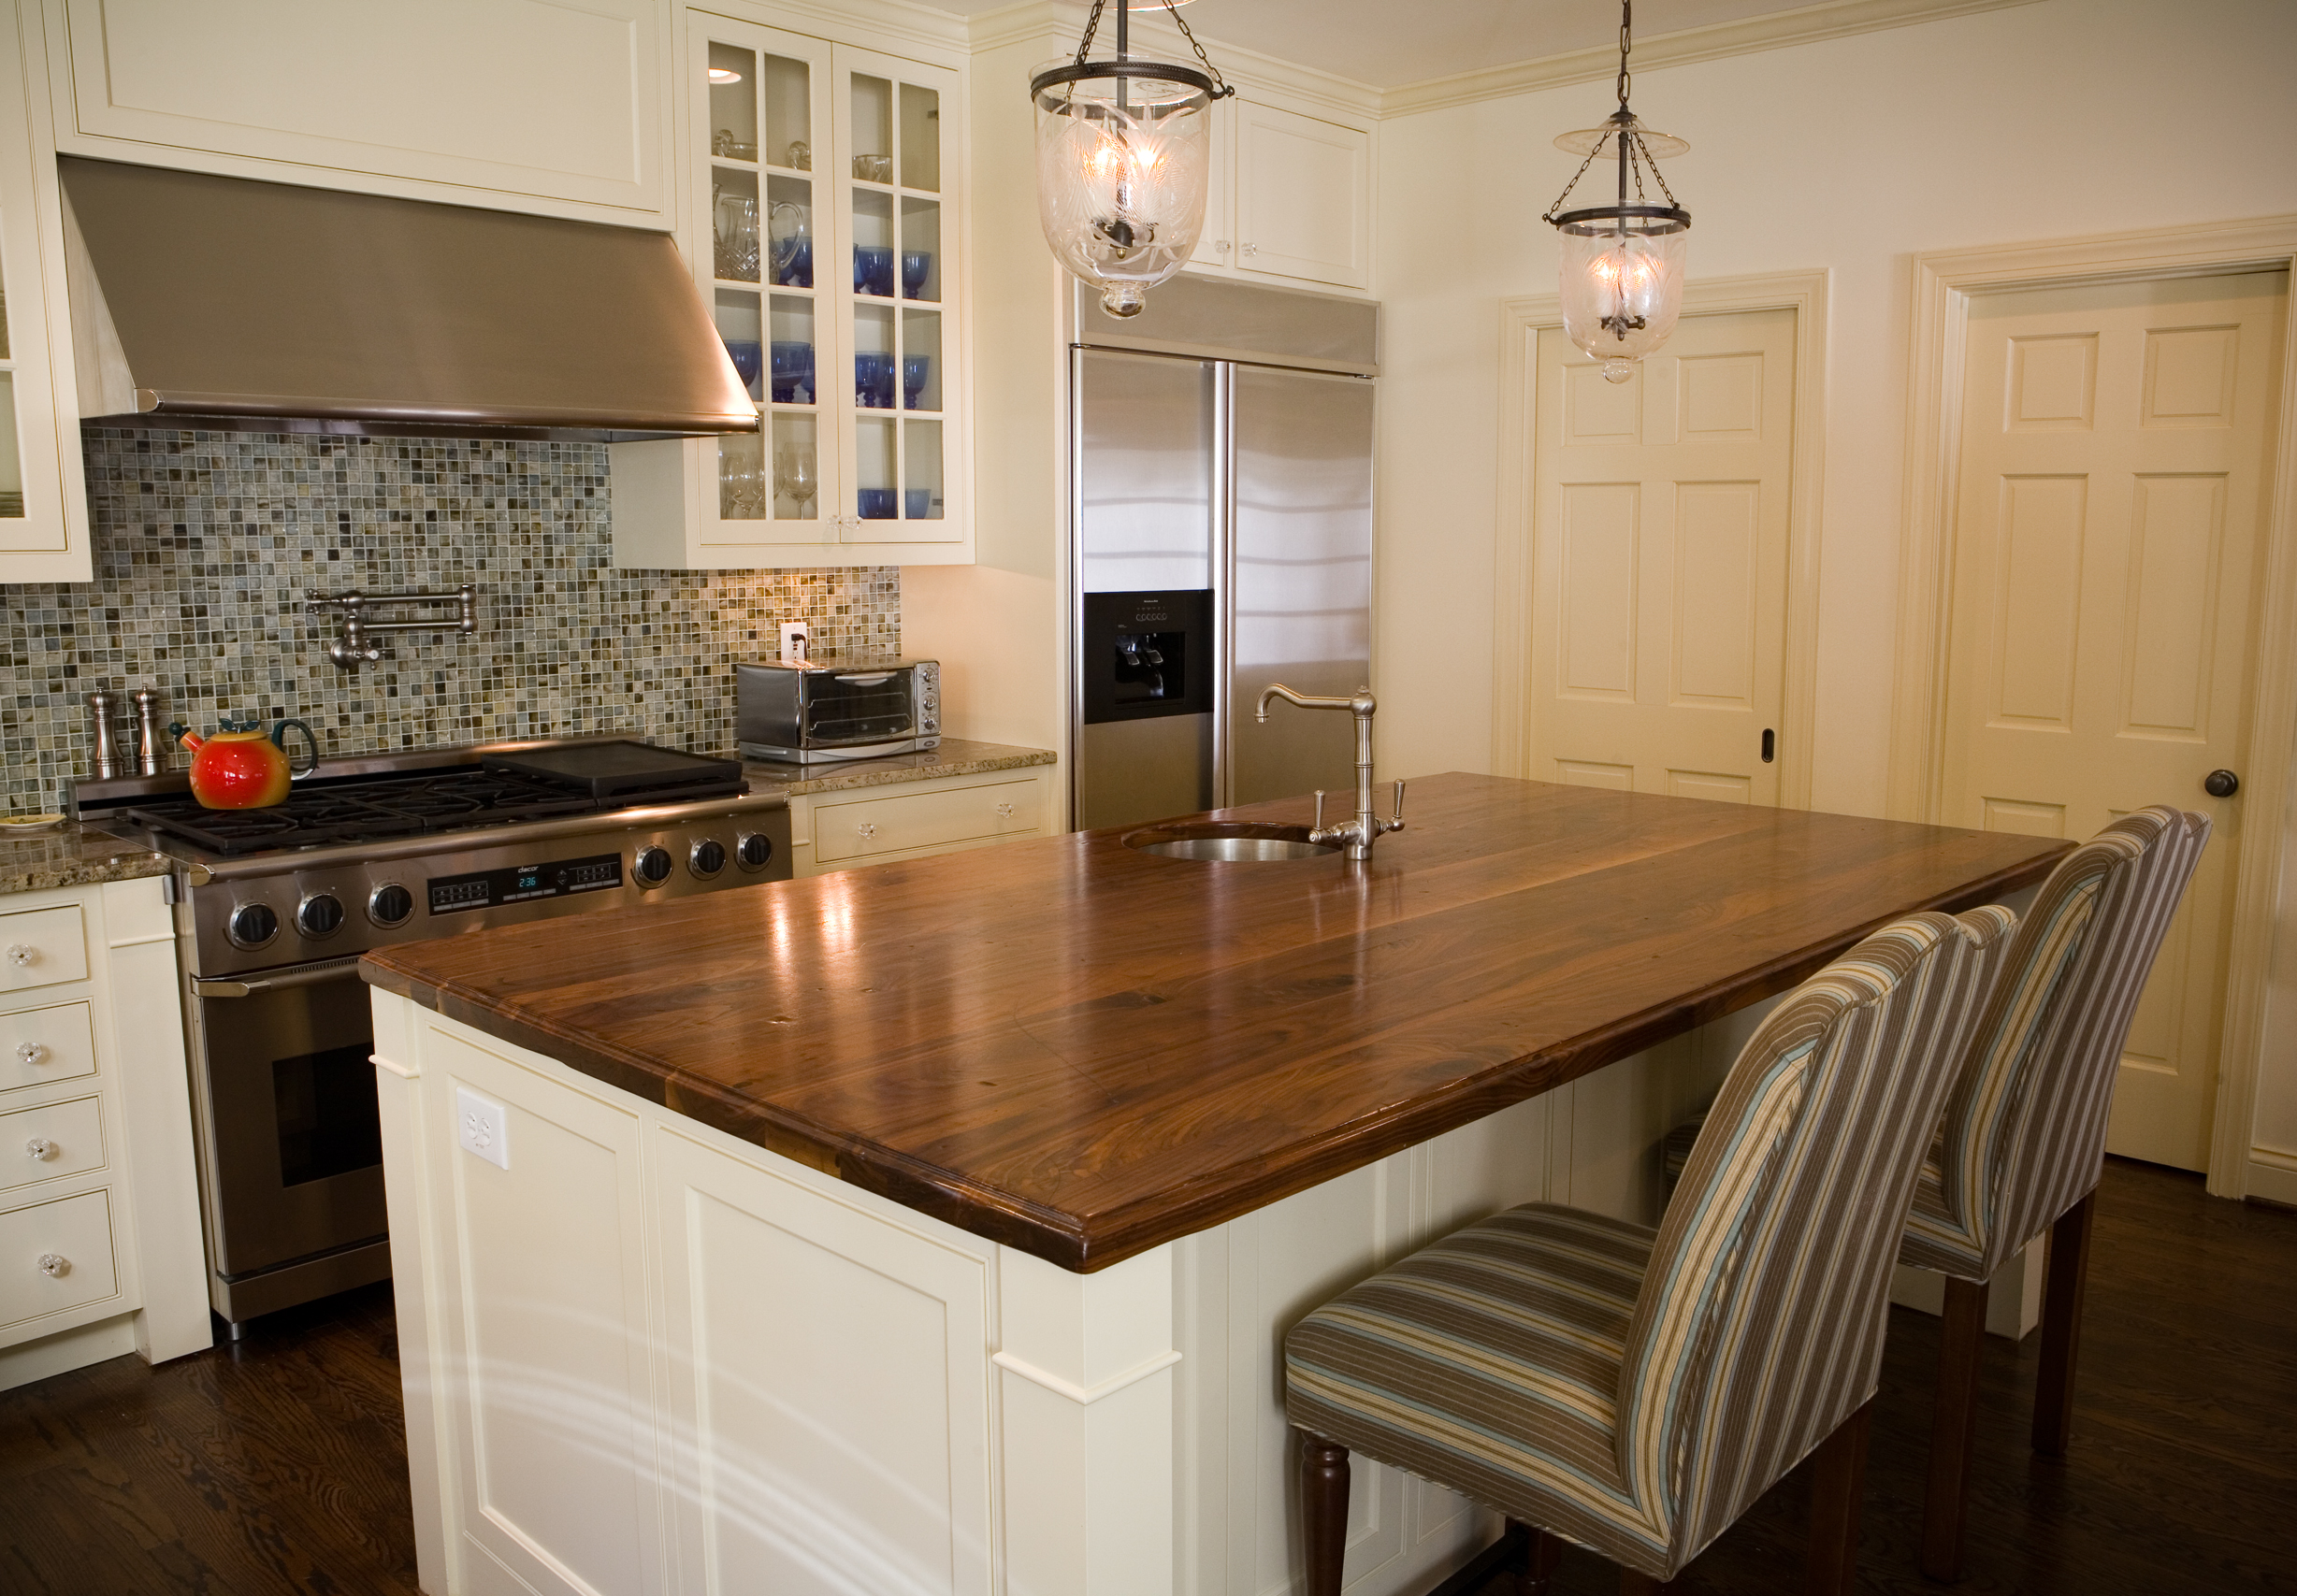 - All About Wood Kitchen Countertops You Have To Know - Artmakehome